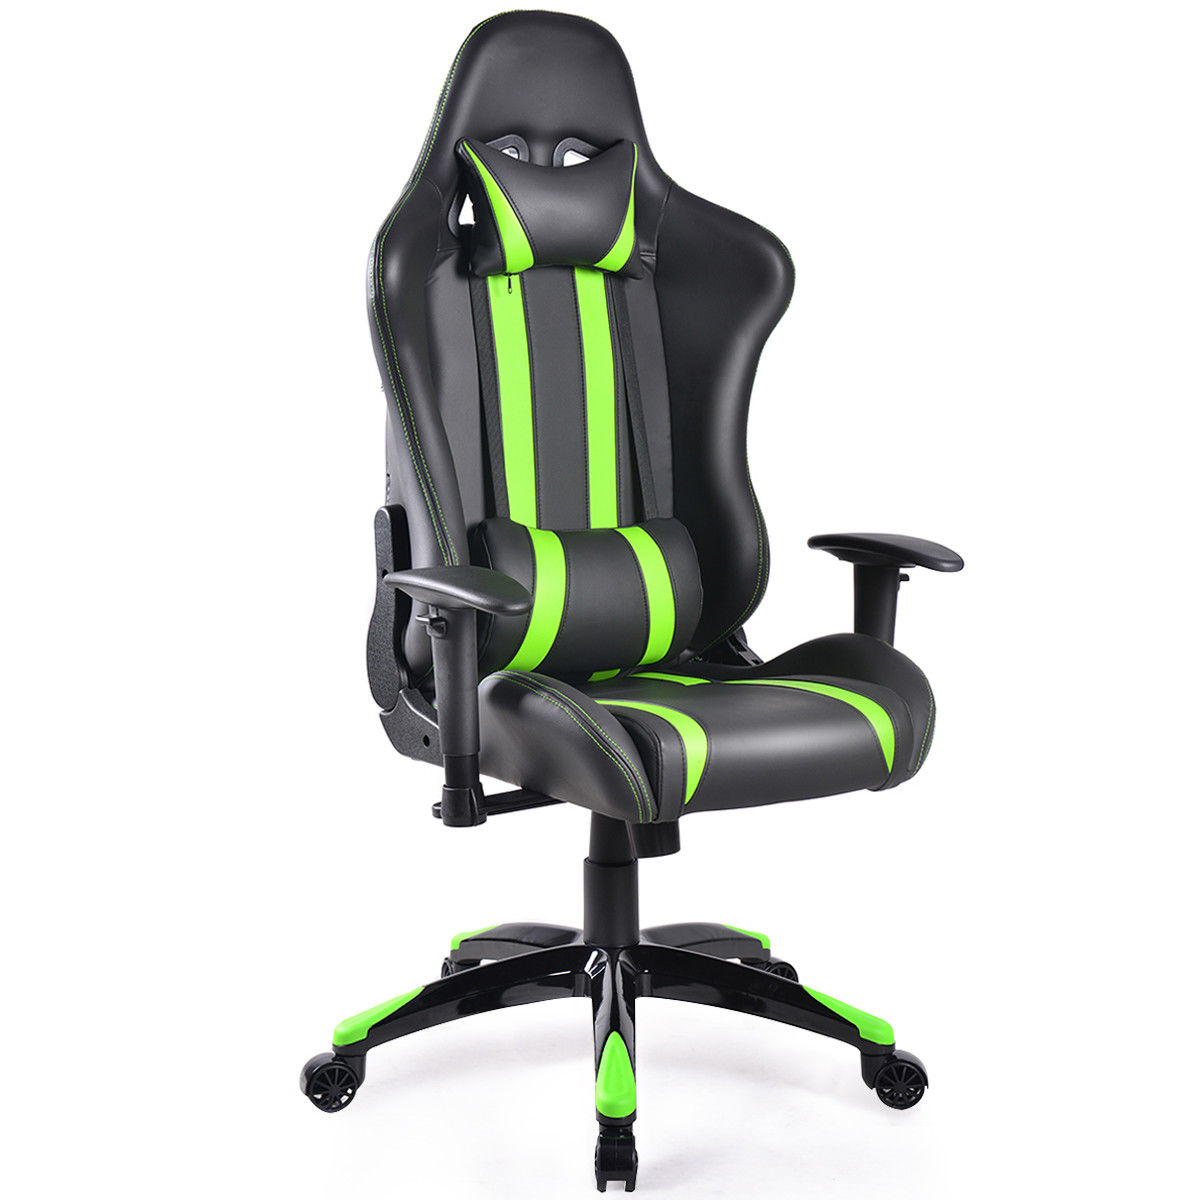 Giantex Racing High Back Reclining Gaming Chair Swivel Ergonomic Computer Desk Office Chair New Modern Furniture HW53993GN 240340 high quality back pillow office chair 3d handrail function computer household ergonomic chair 360 degree rotating seat